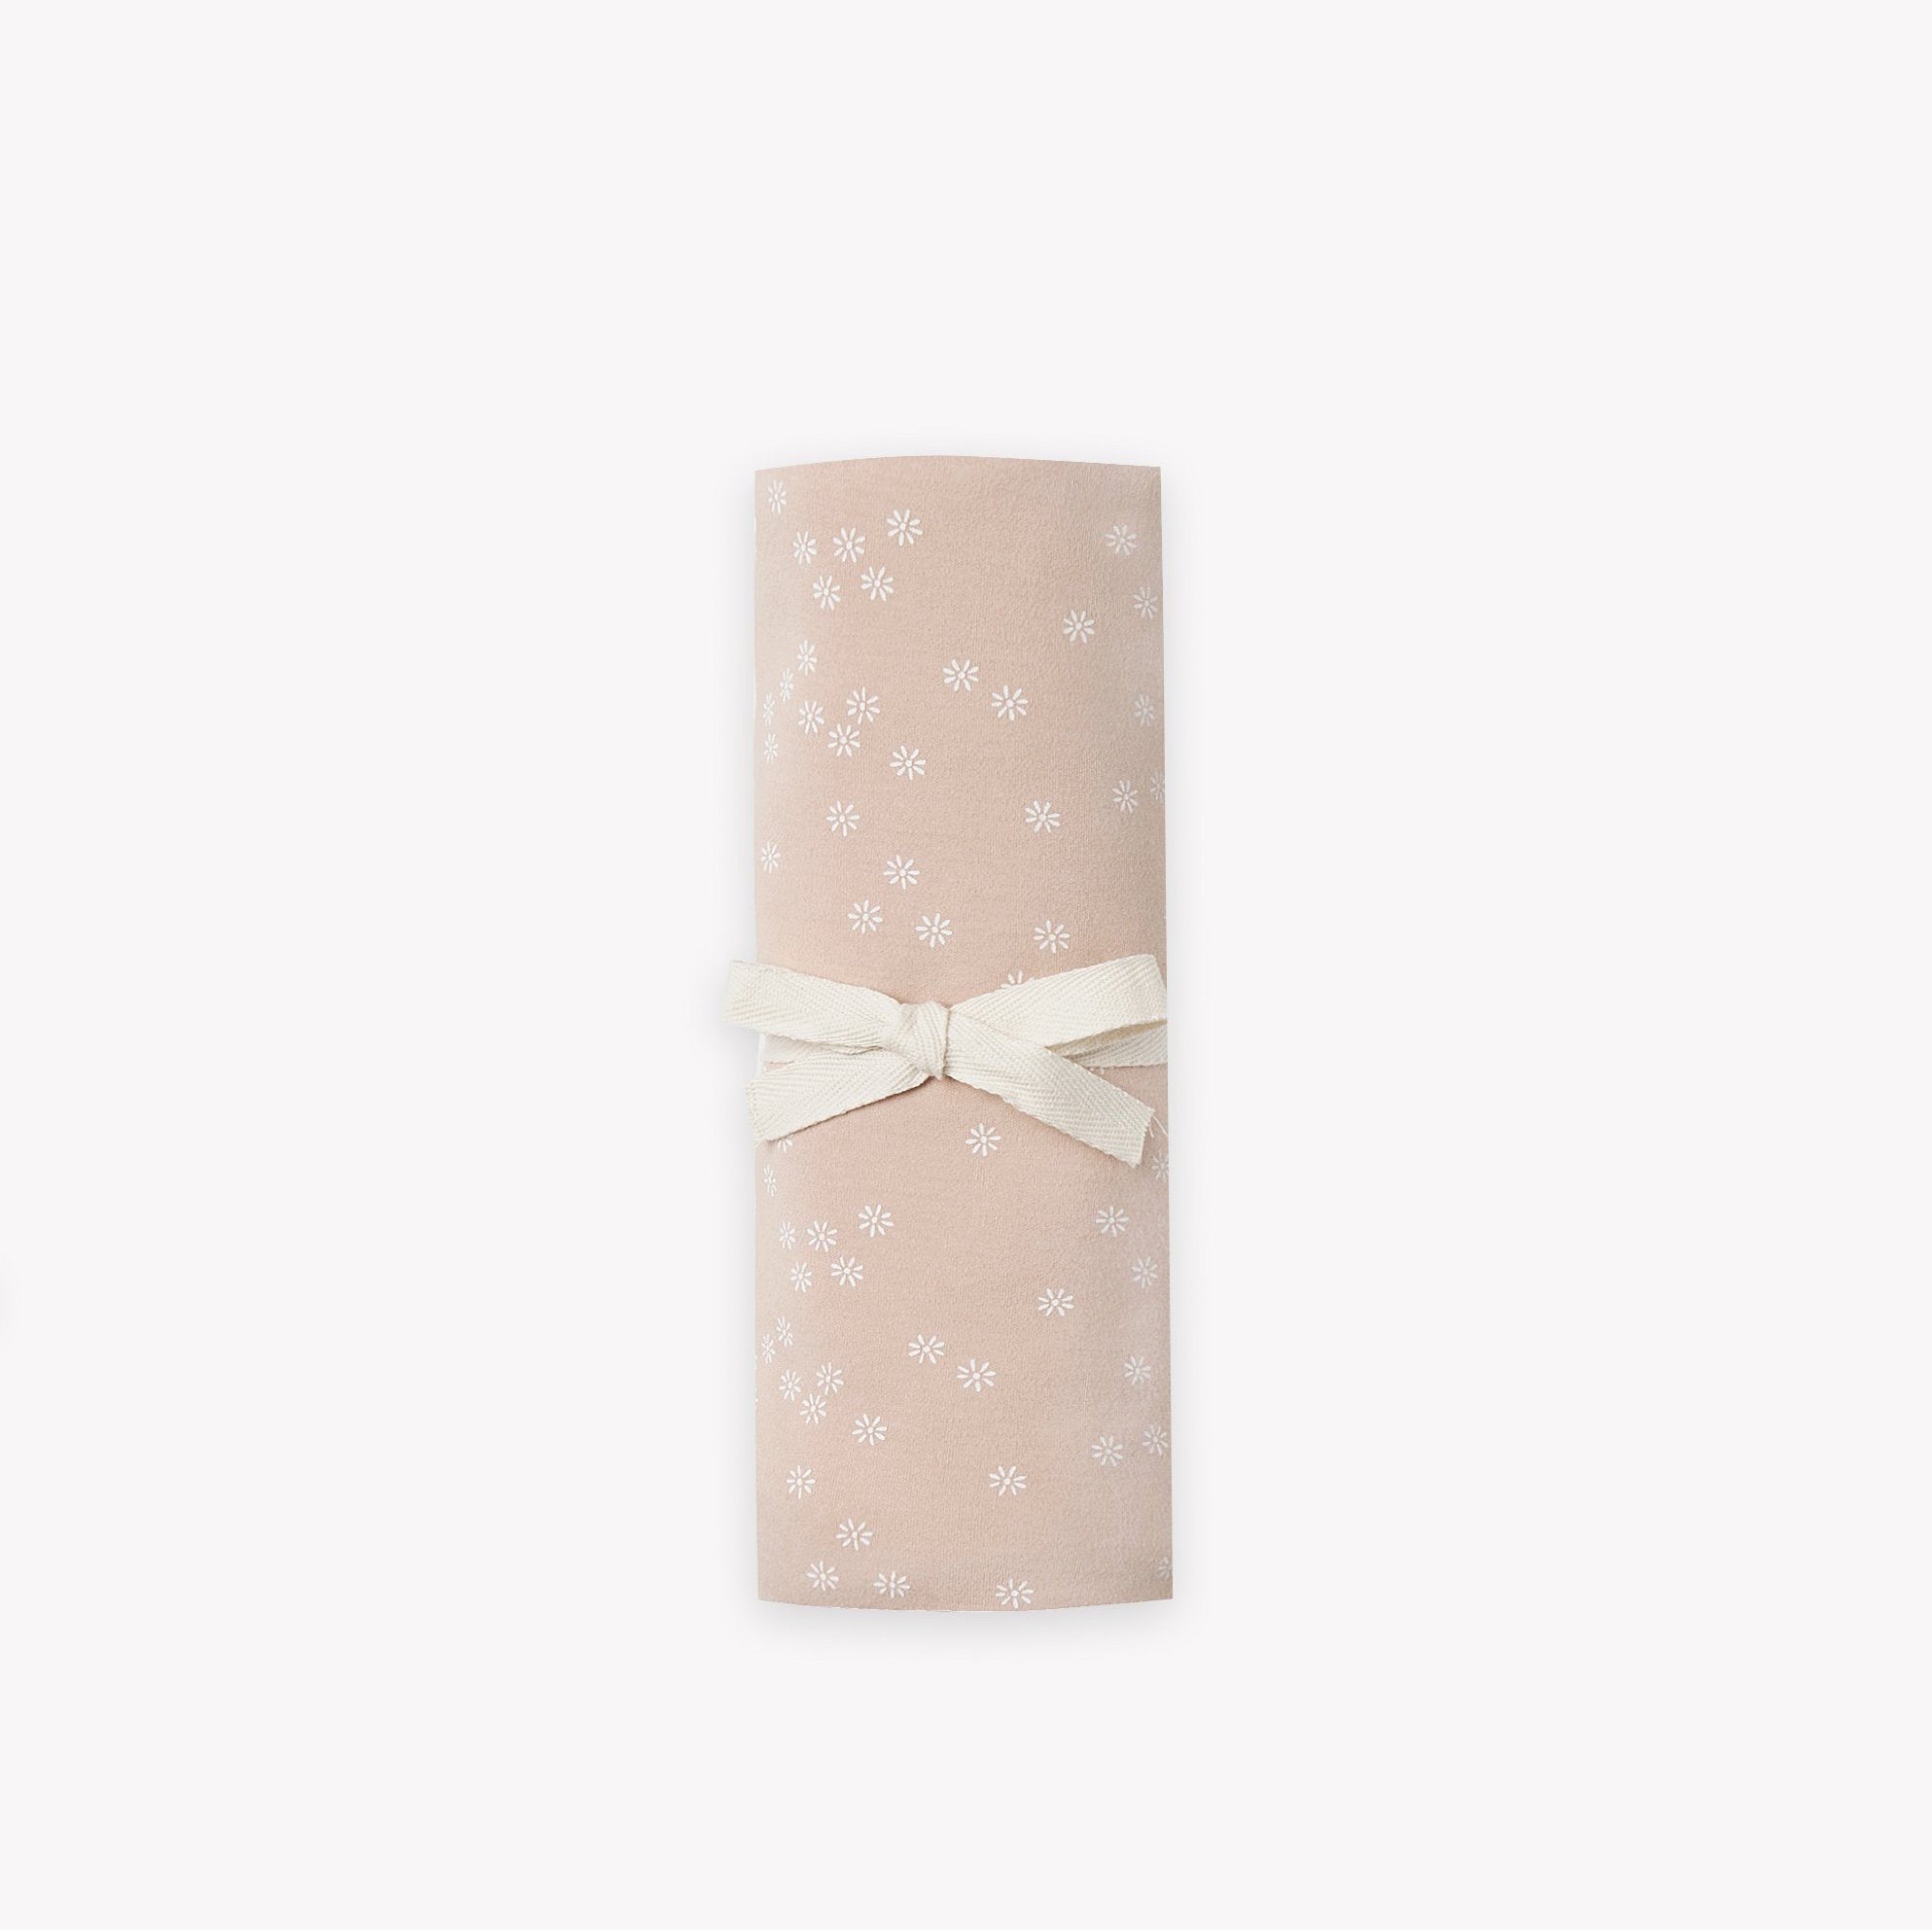 Quincy Mae organic cotton baby swaddle blanket - rose